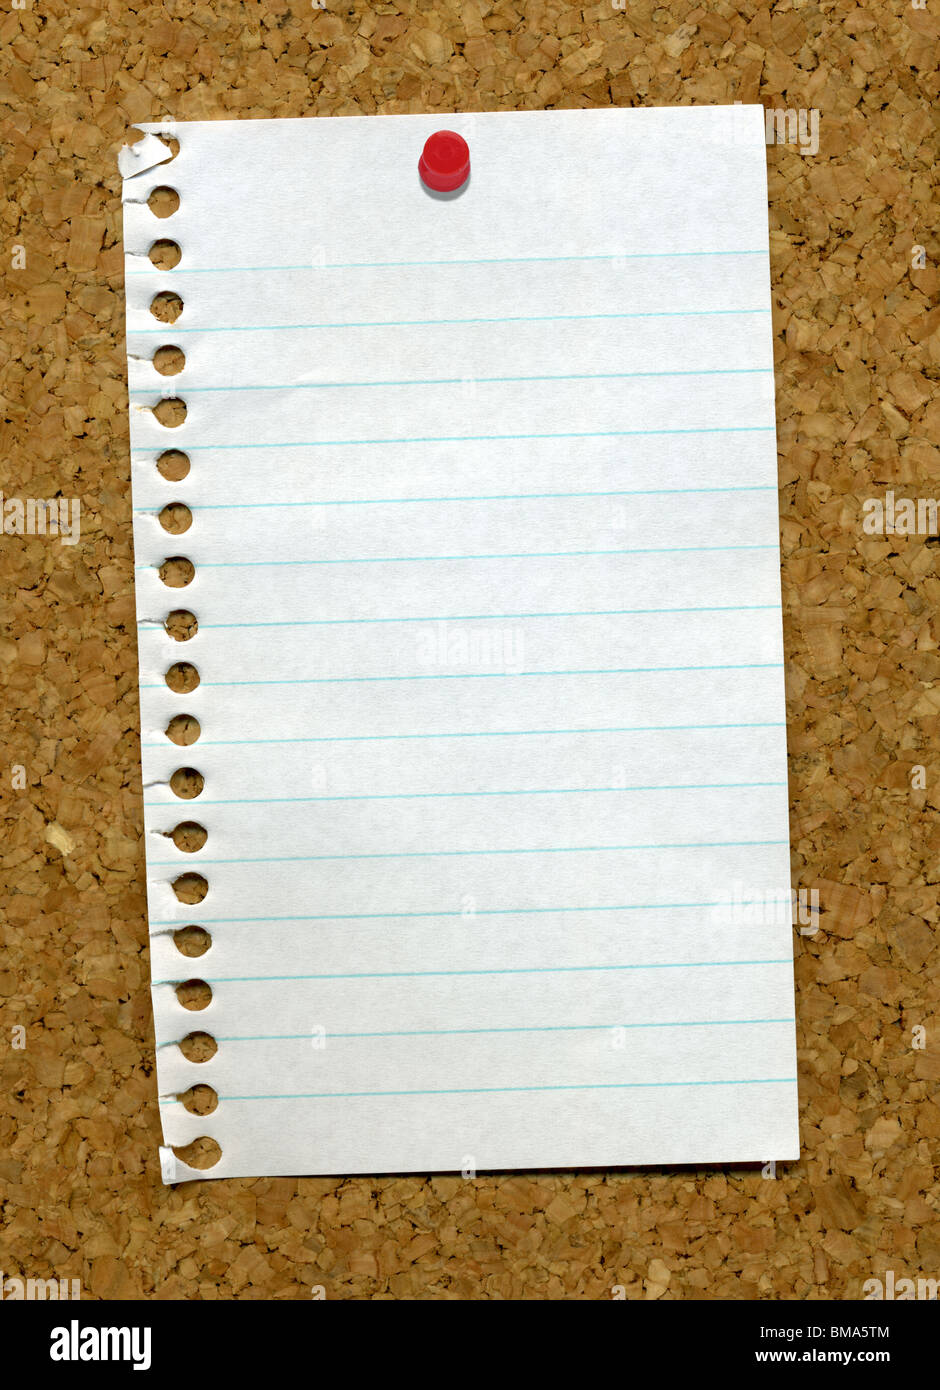 A Small Blank Lined Page From A Notepad Stuck To A Cork – Blank Lined Page